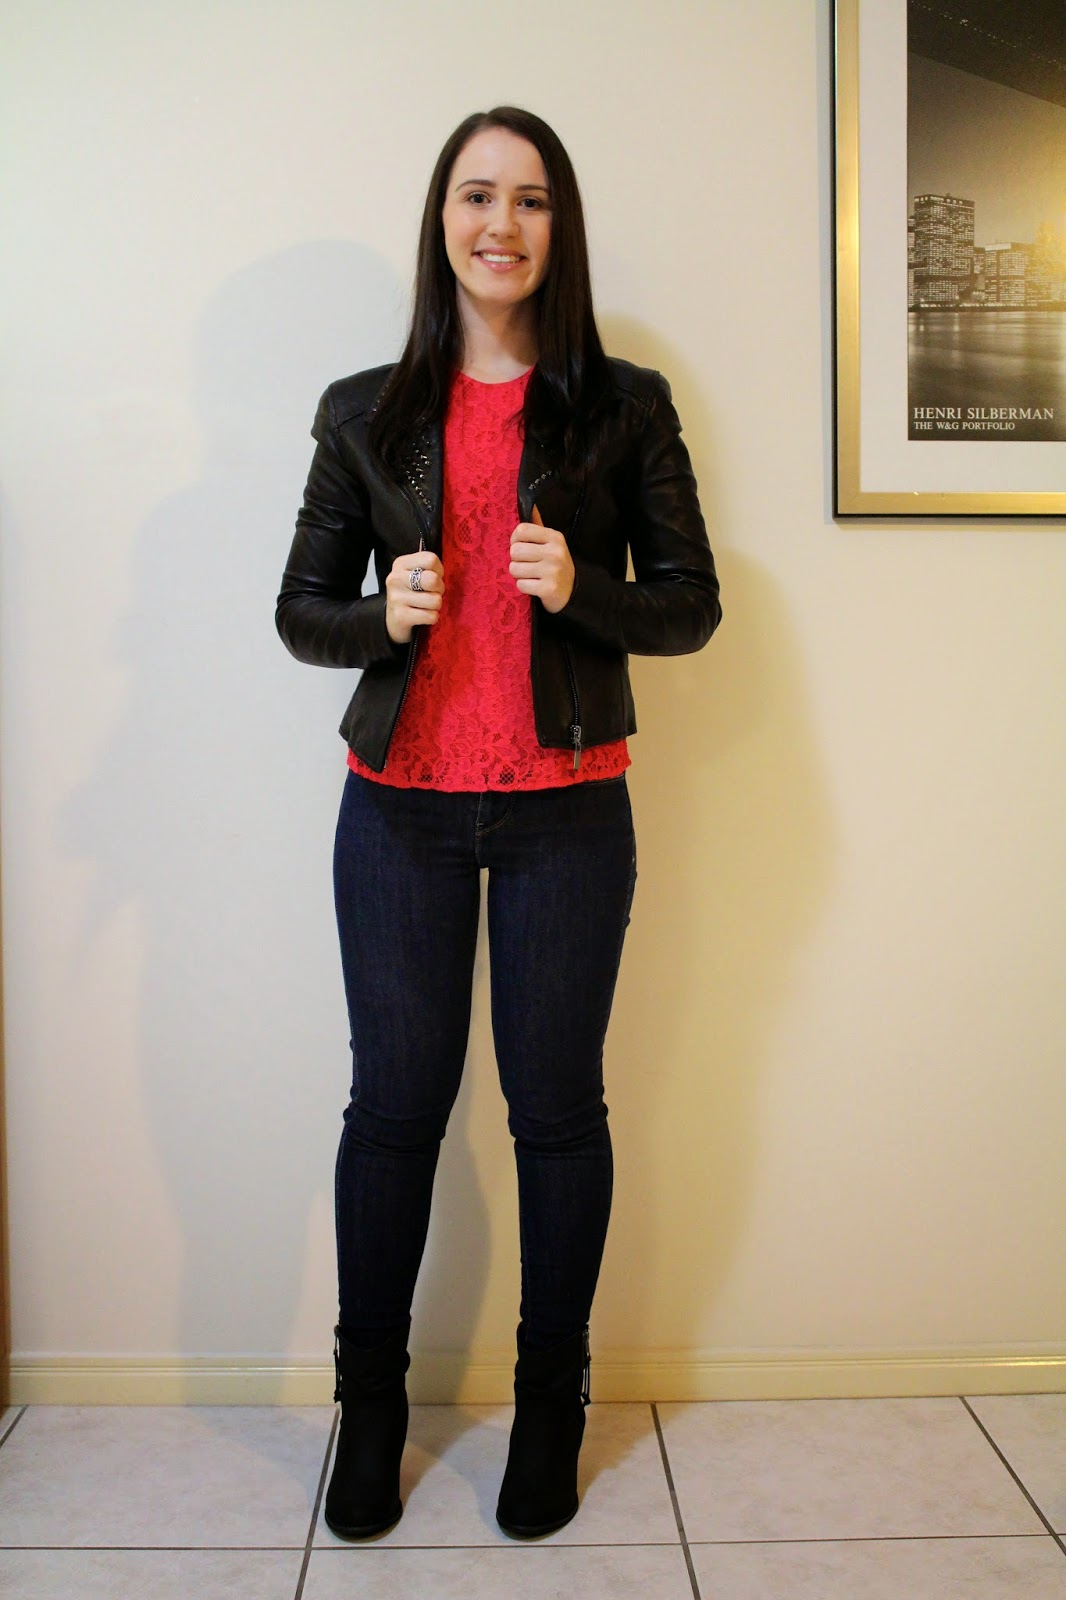 My Birthday Outfit: Pop of Red & Leather | Brie's Petite World